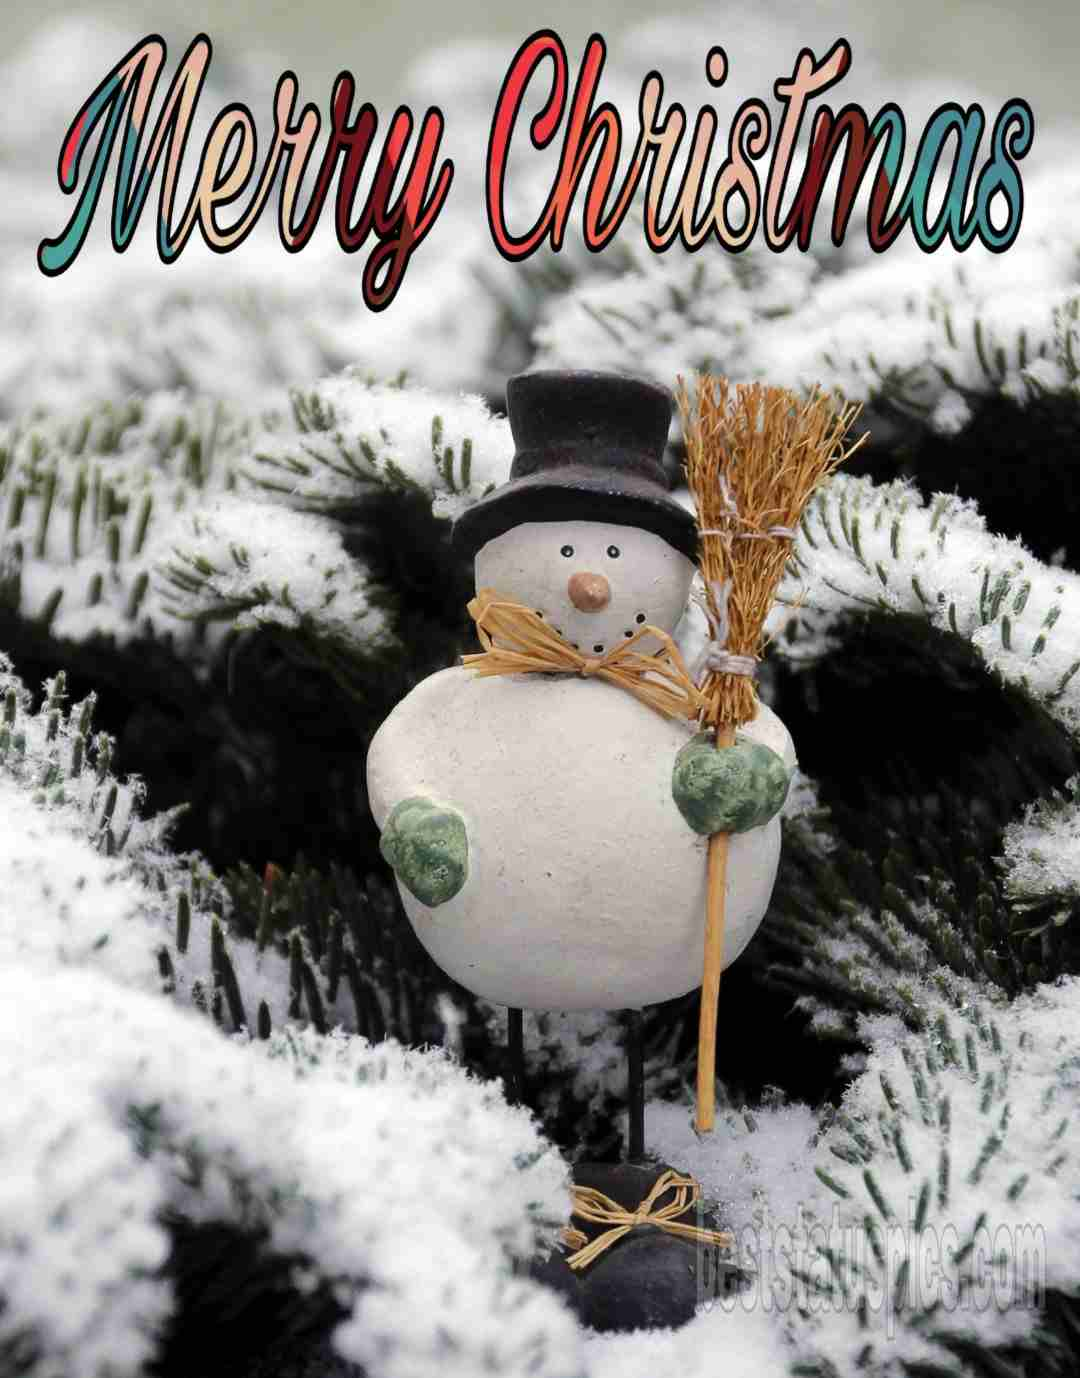 Merry Christmas wishes 2019 Facebook Story